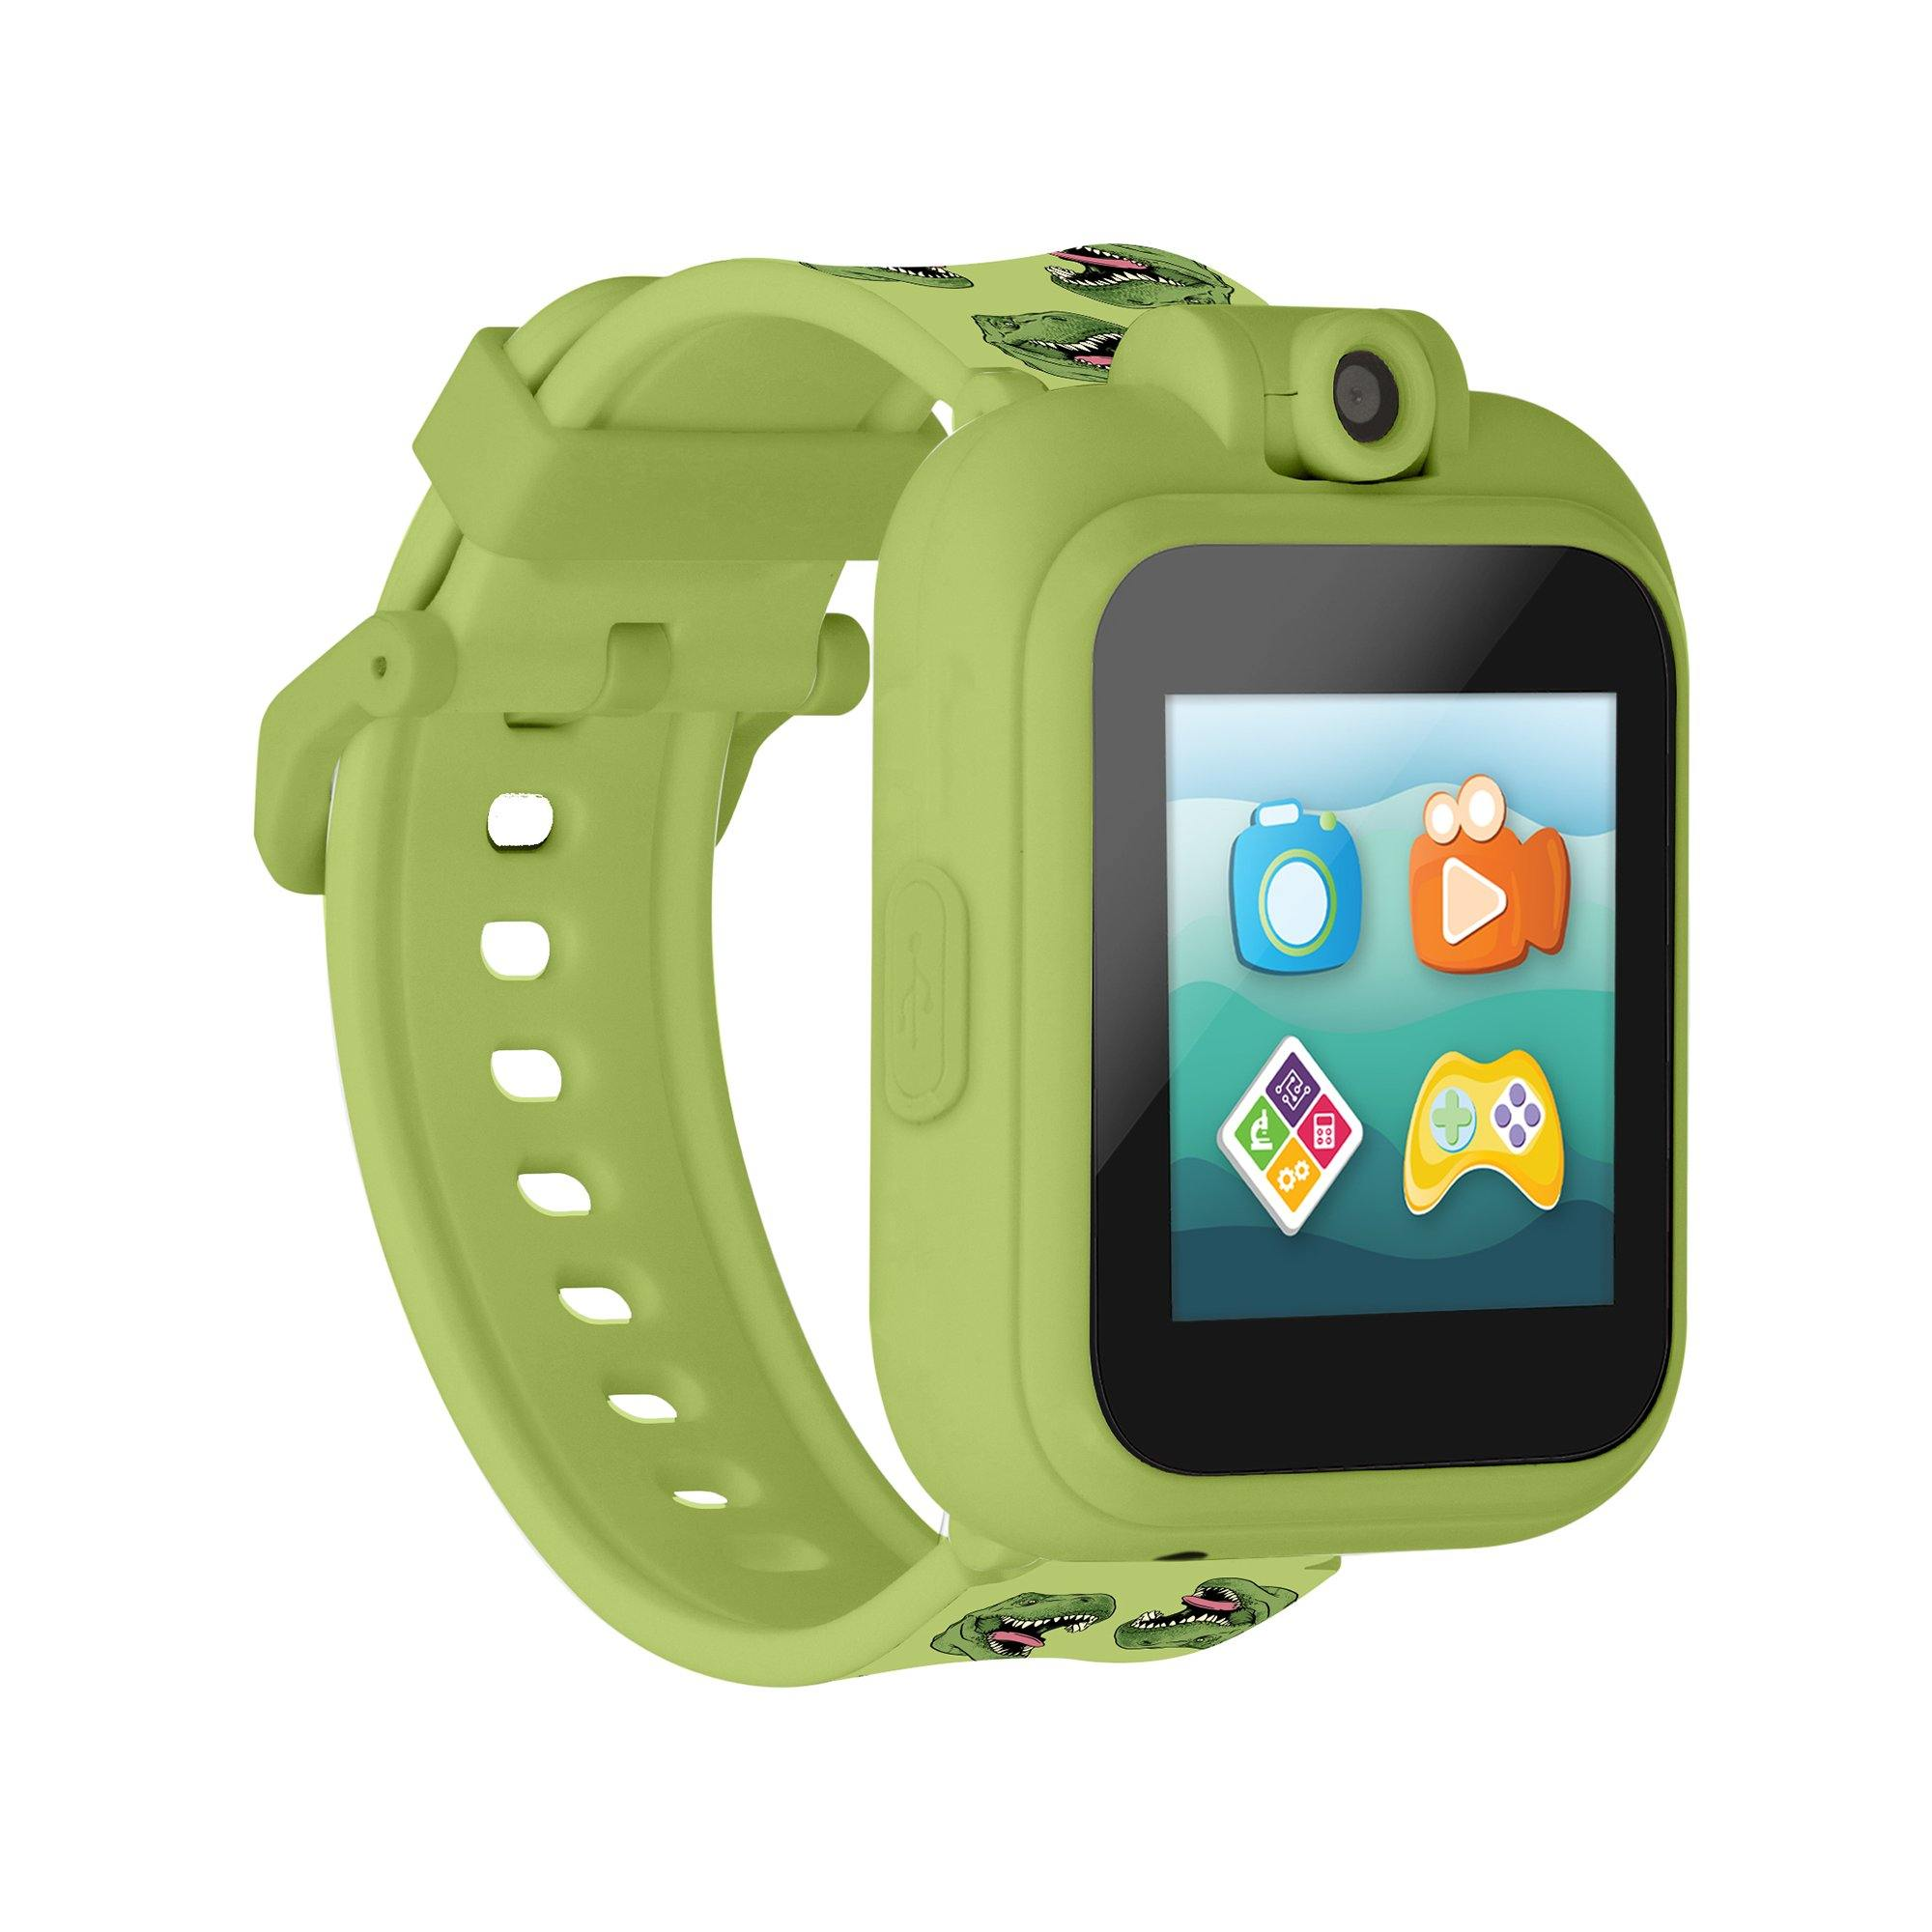 PlayZoom 2 Kids Smartwatch: Green Dinosaur Print